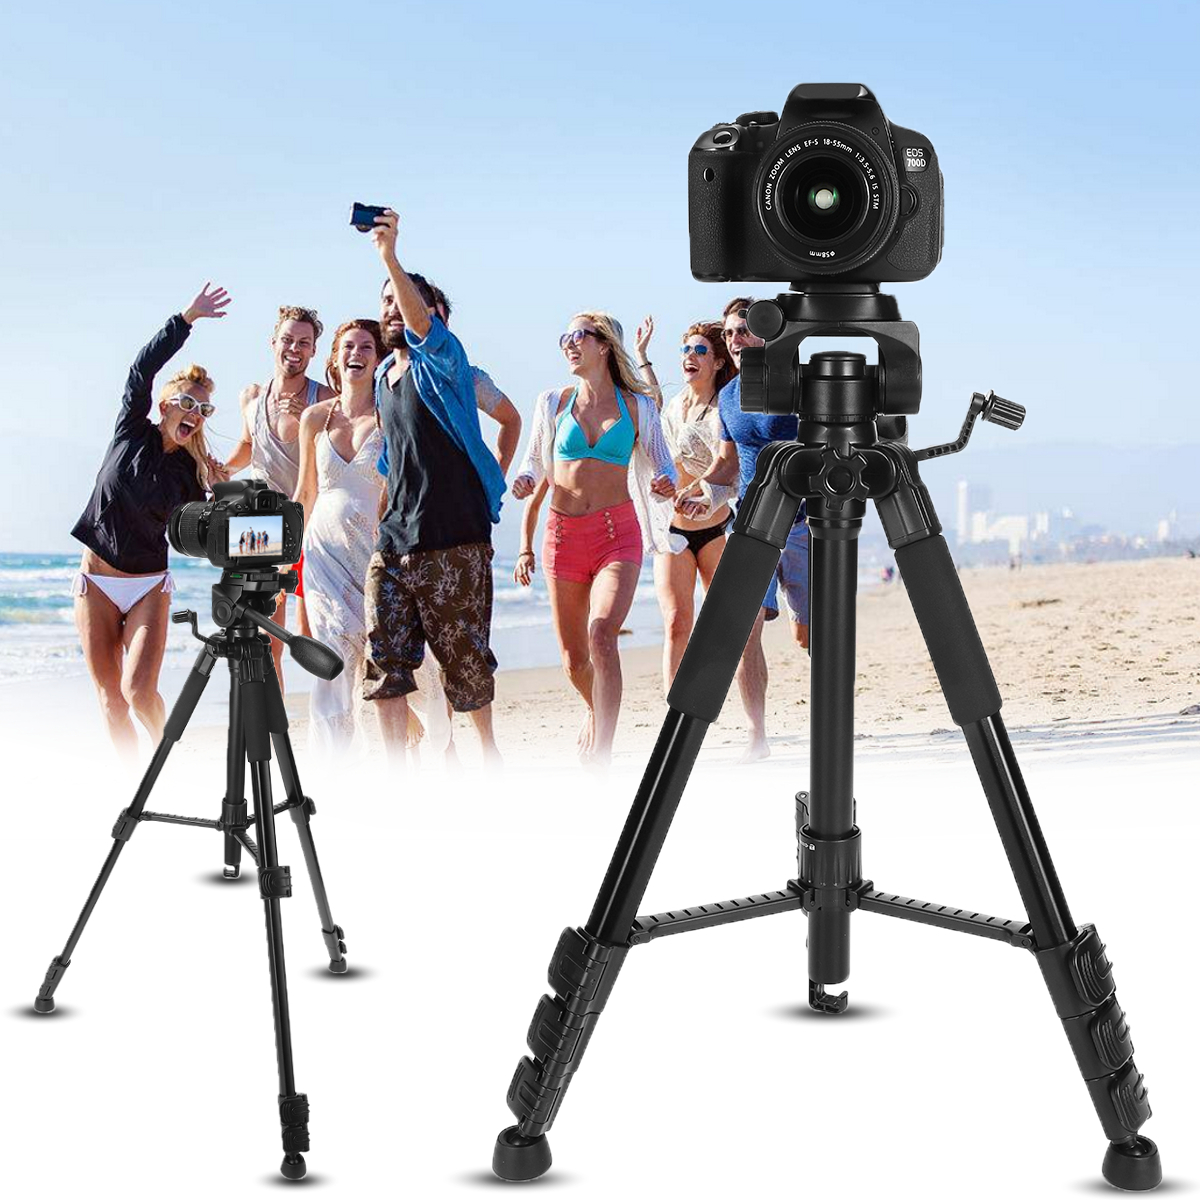 Adjustable Monopod Telescopic Tripod Stand Holder Fit For DSLR Camera Camcorders Black Three-dimensional Head Aluminum+ABS low price monitor head tripod camera telescope mini stand adjustable tripod free shipping